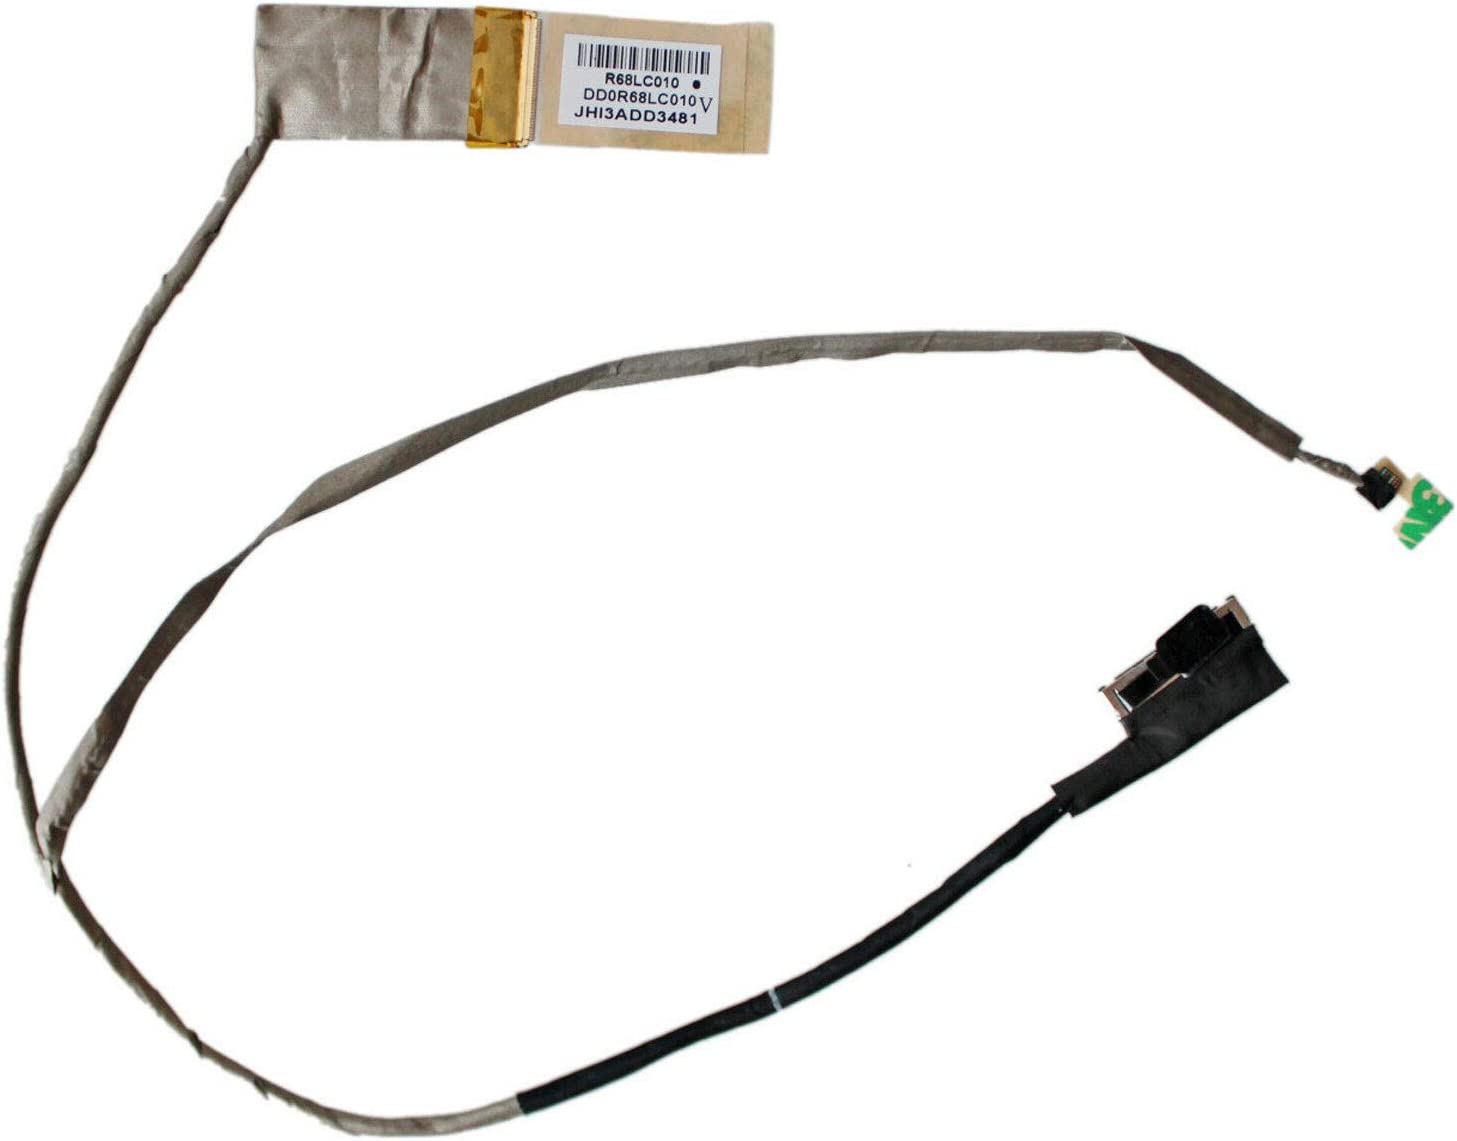 Todiys LCD LED Video Screen Cable for HP Pavilion 17-E 17T-E 17Z-E Series 17-E054CA 17-E055NR 17-E017CL 17-E017DX 17-E018DX 17-E121NR 17-E122CA 17-E155NR 17-E180NR 17-E123CL DD0R68LC010